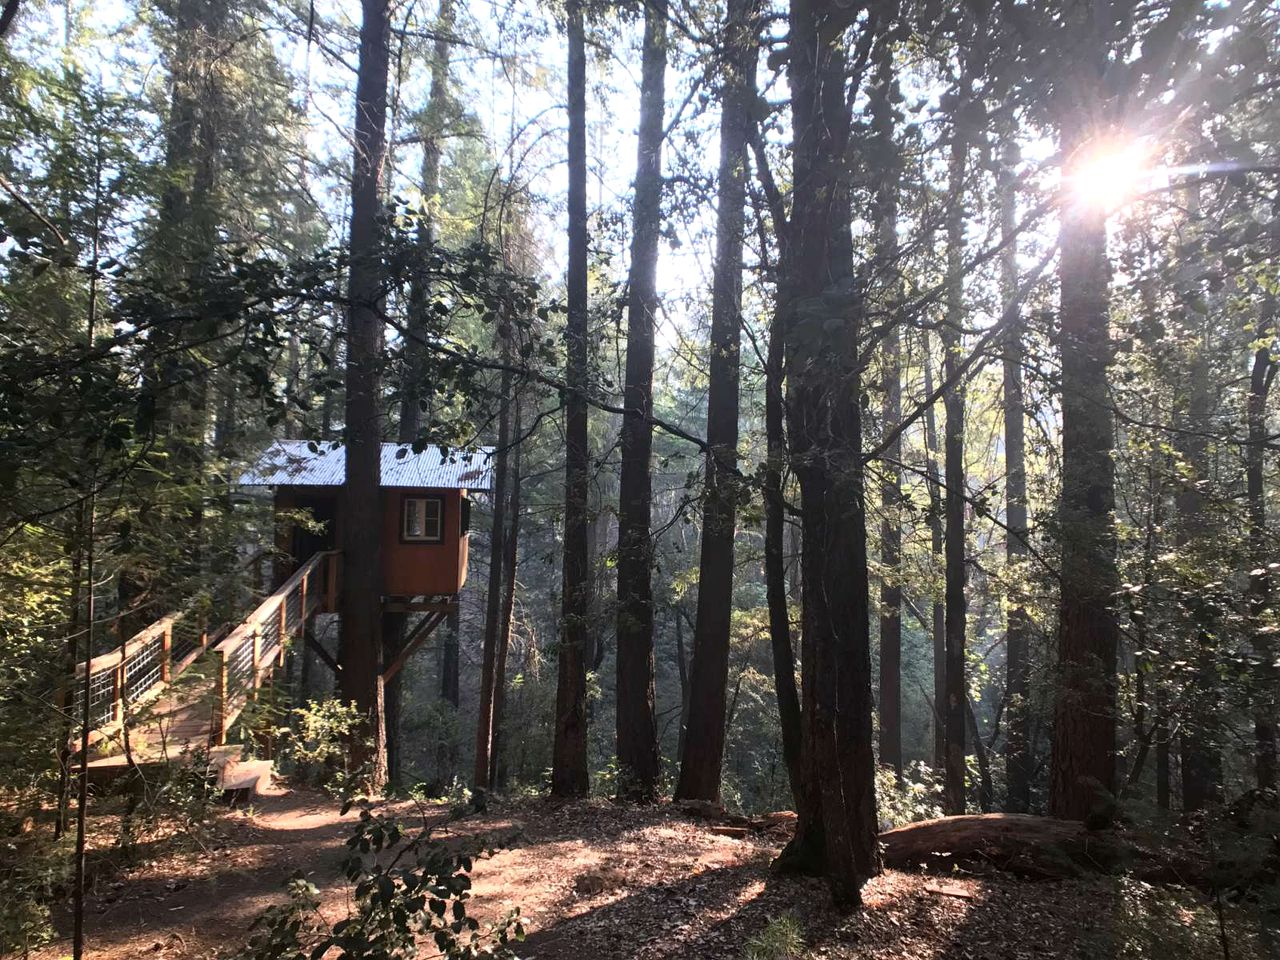 Towering wooden Tree house rental in California.